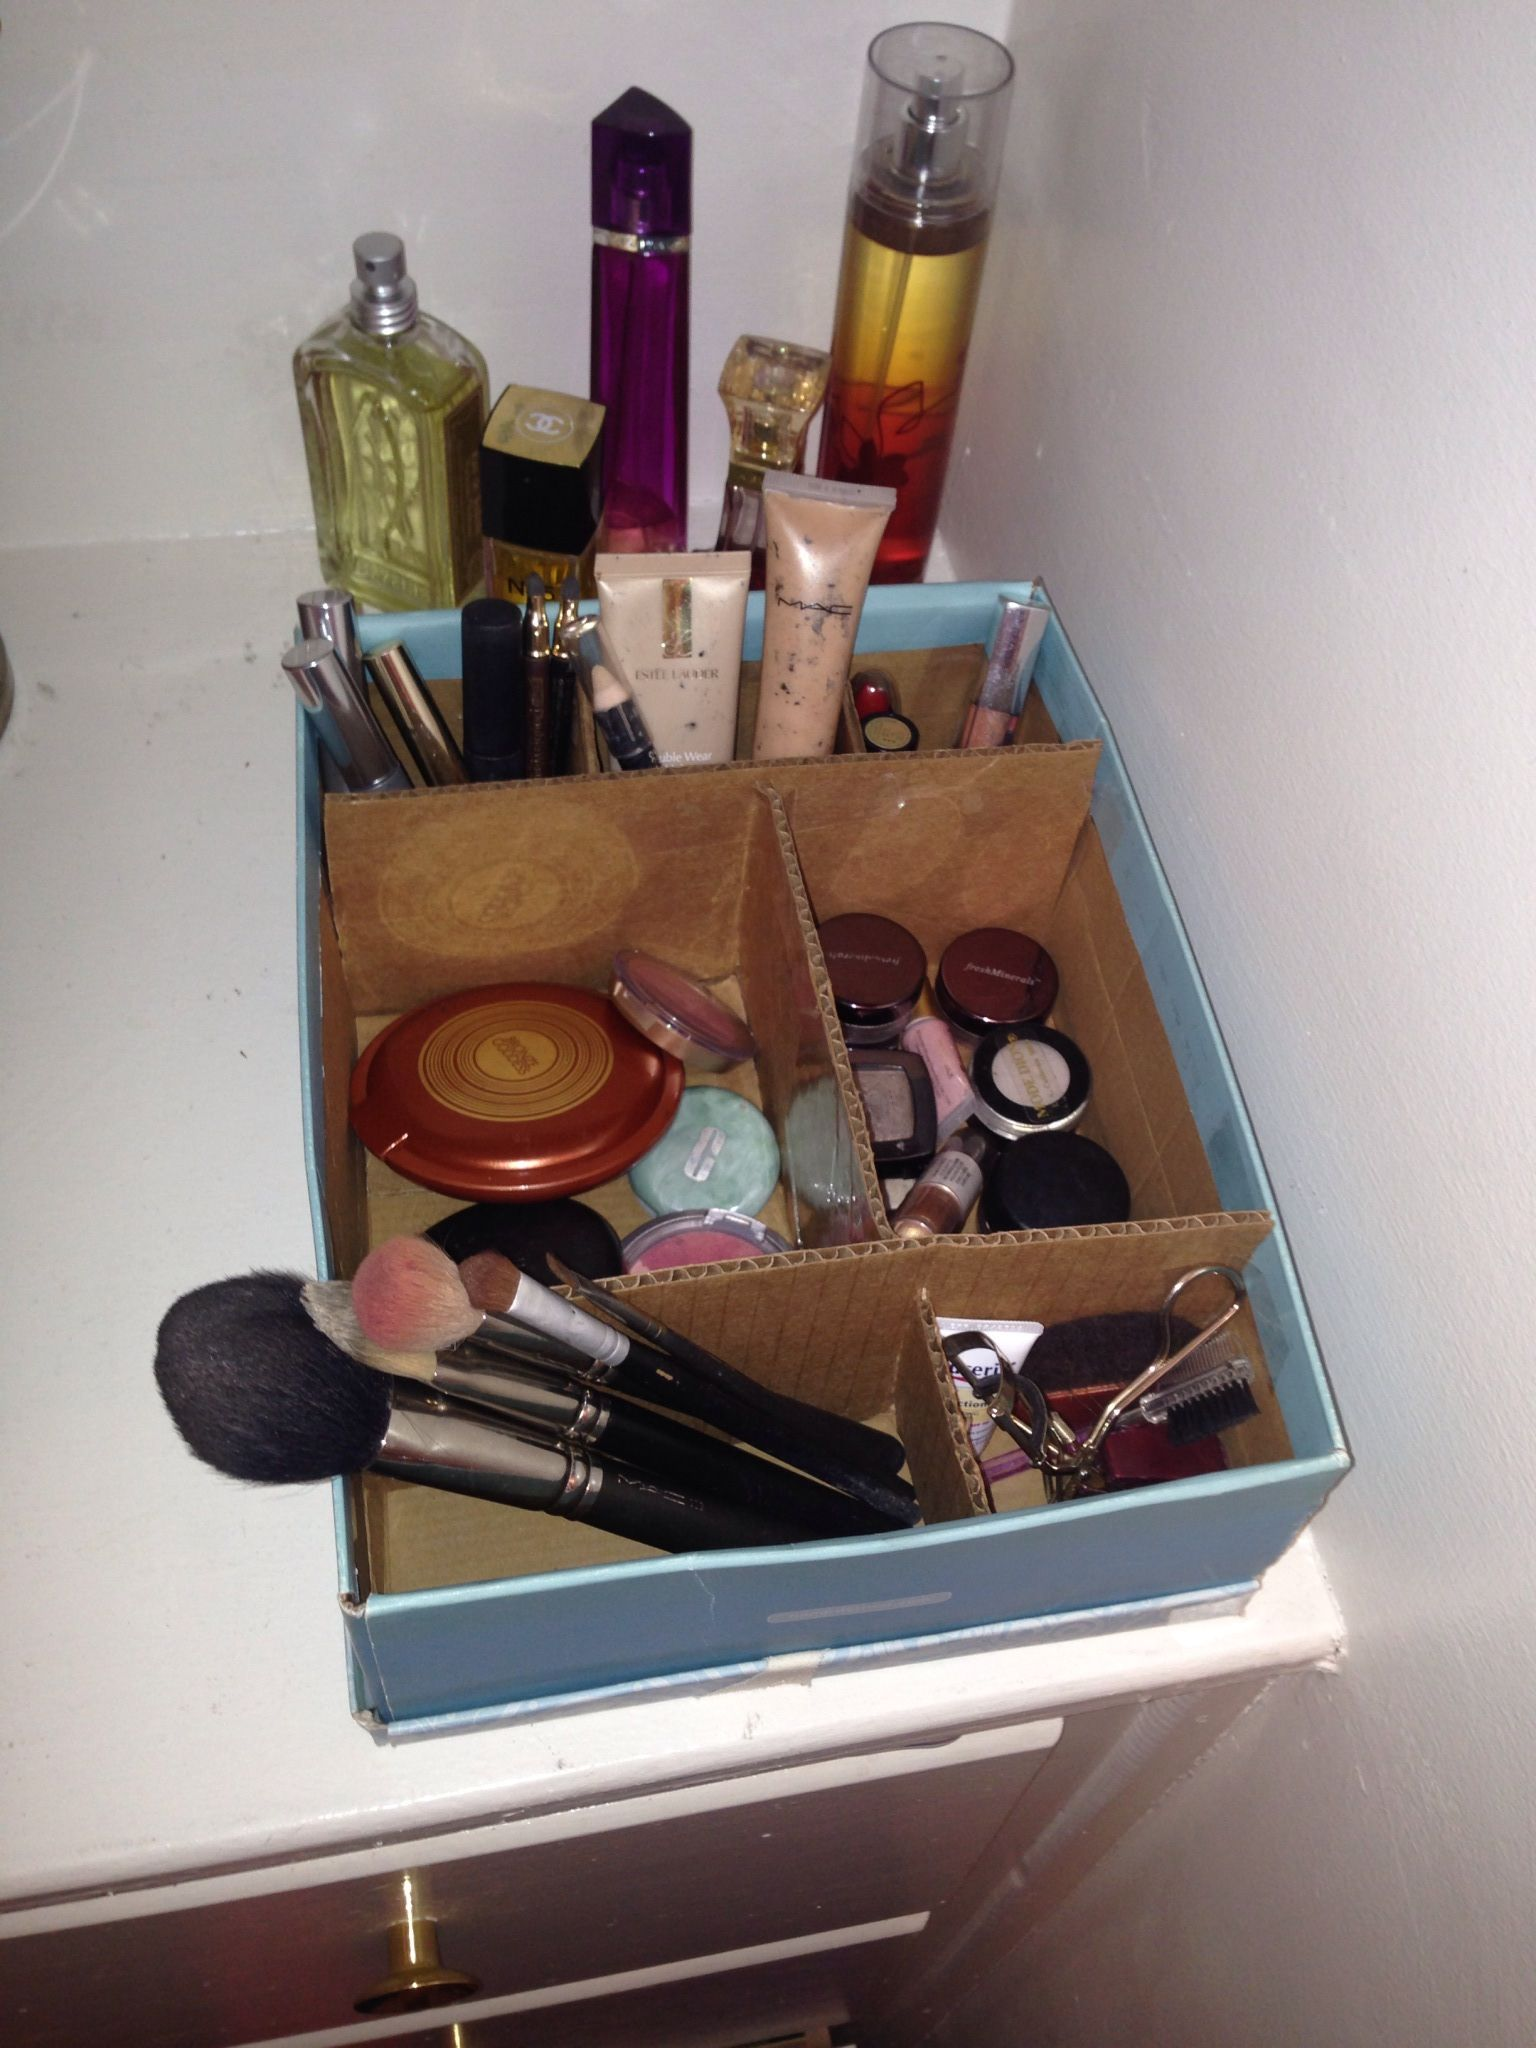 Design Makeup Organization diy makeup organizer idea i had that worked for me shoe box cardboard